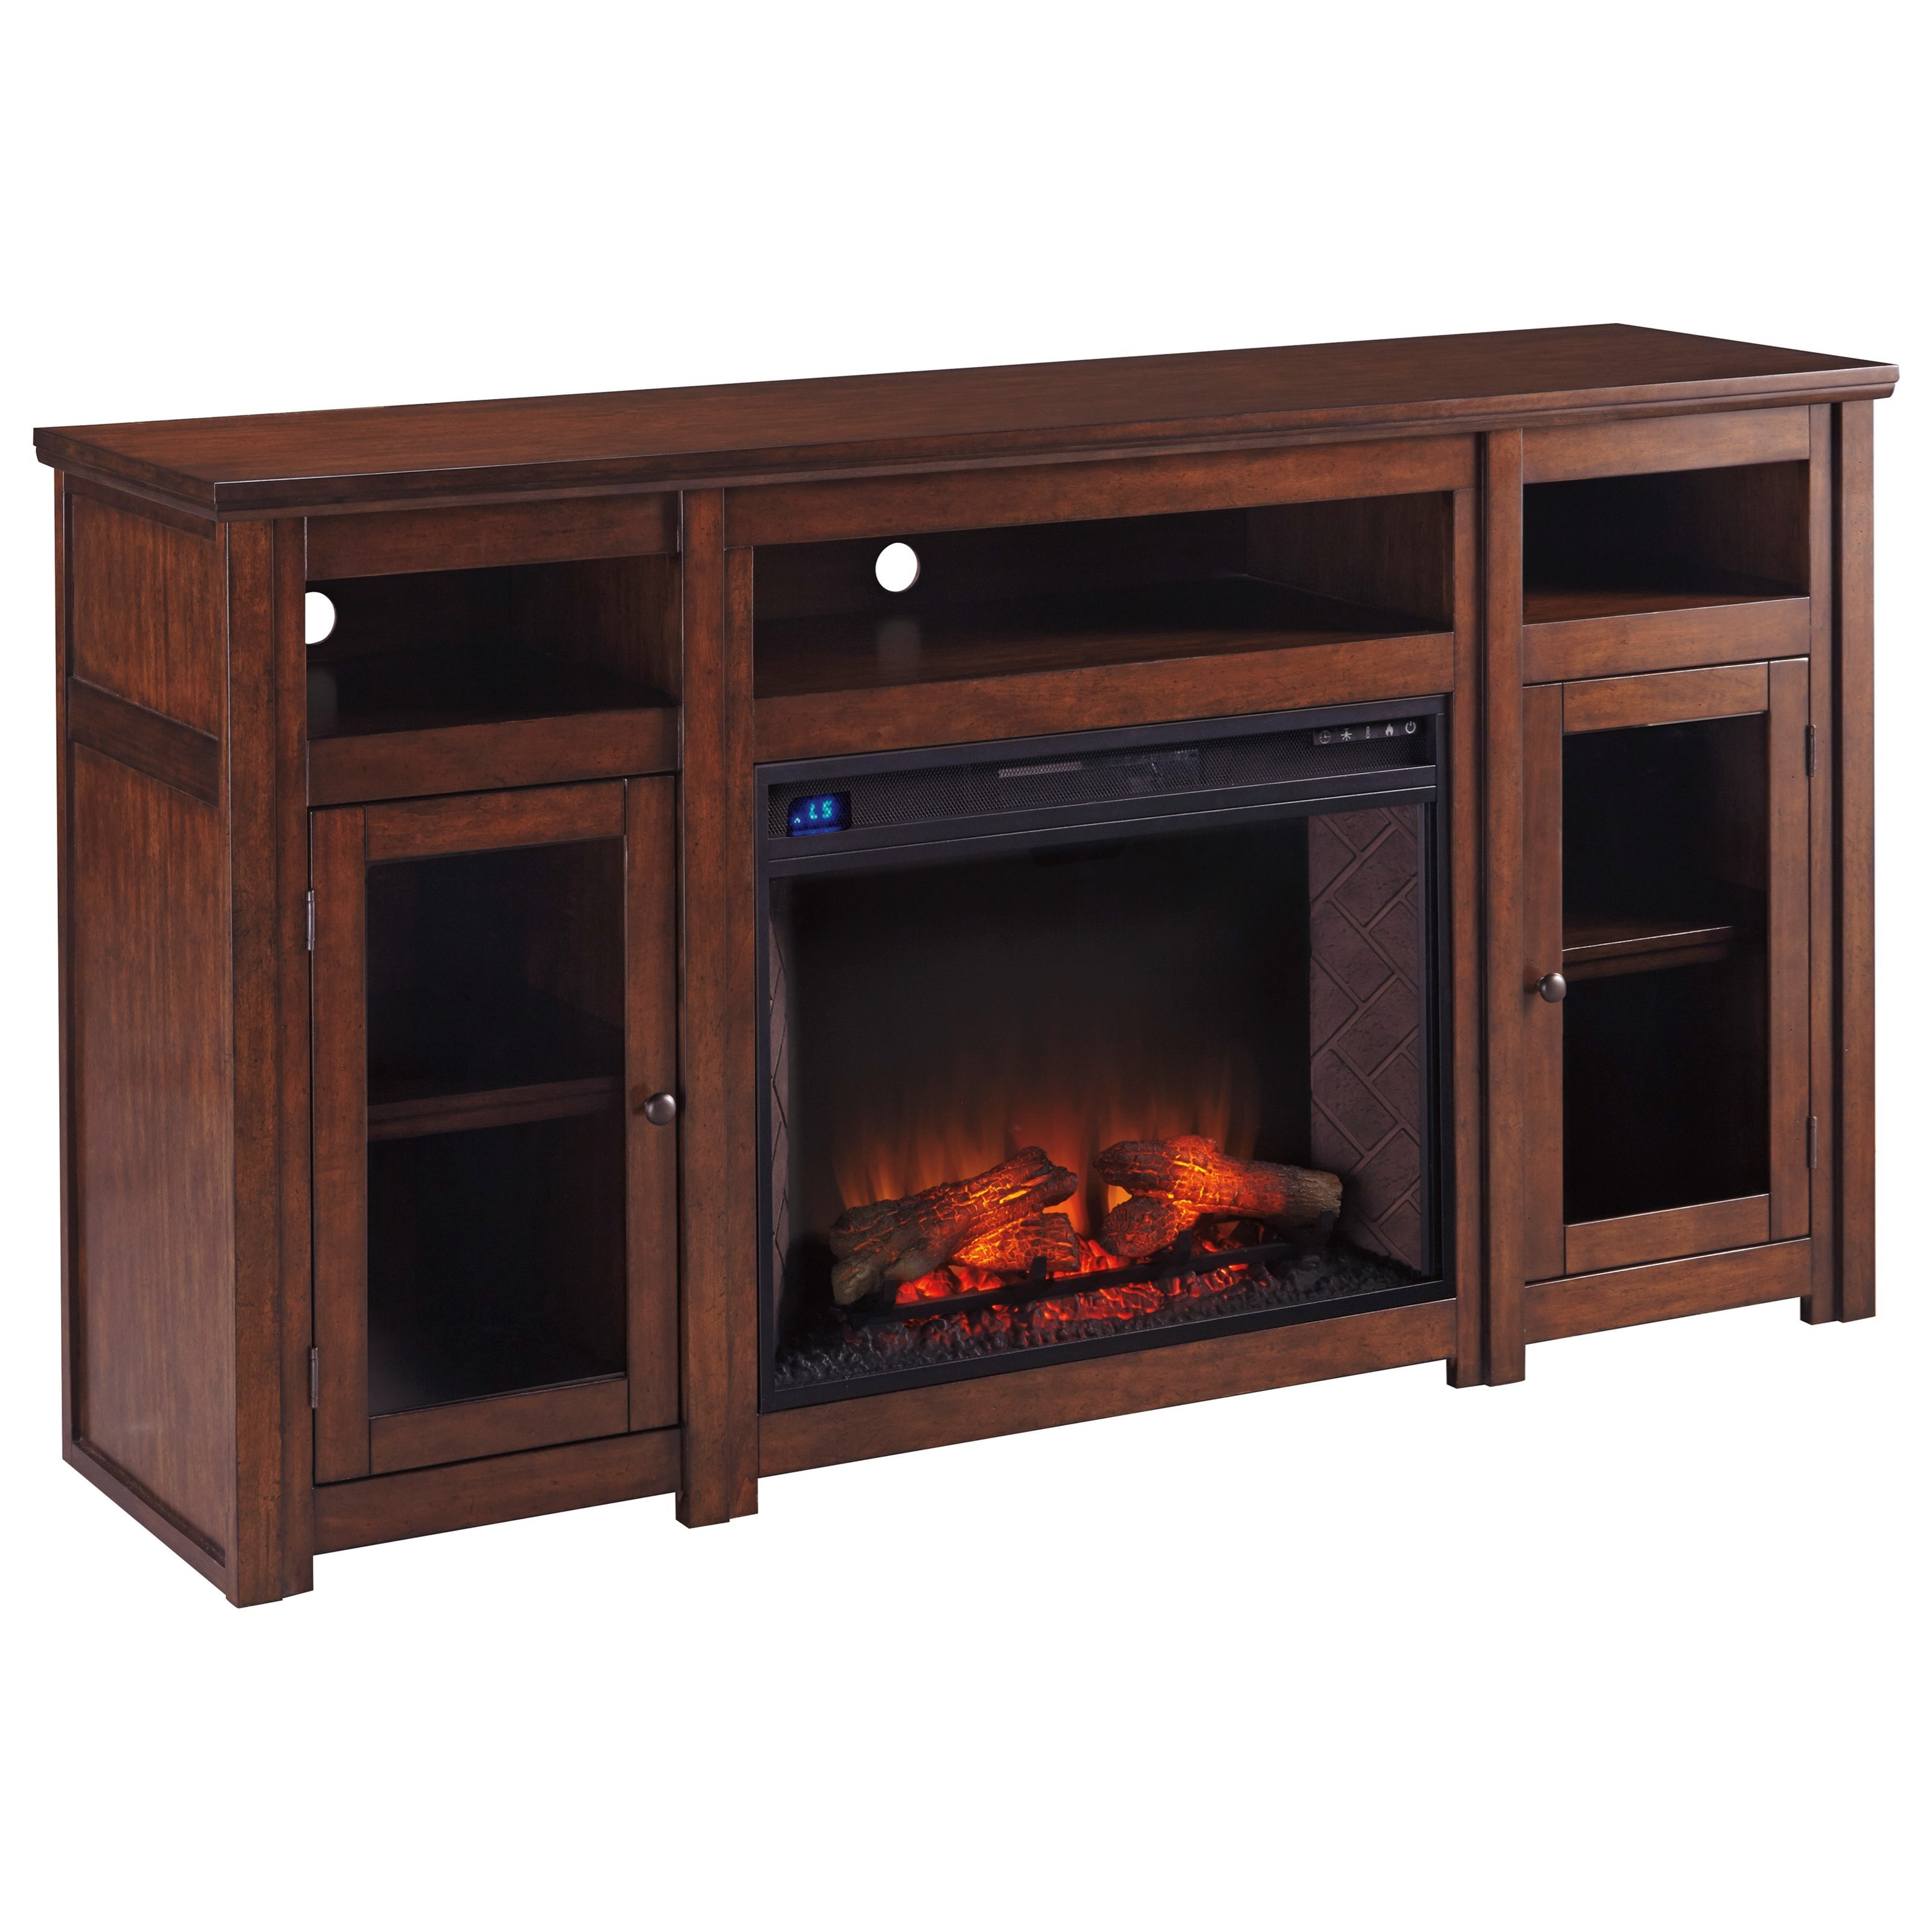 Extra Large Tv Stand W Fireplace Insert